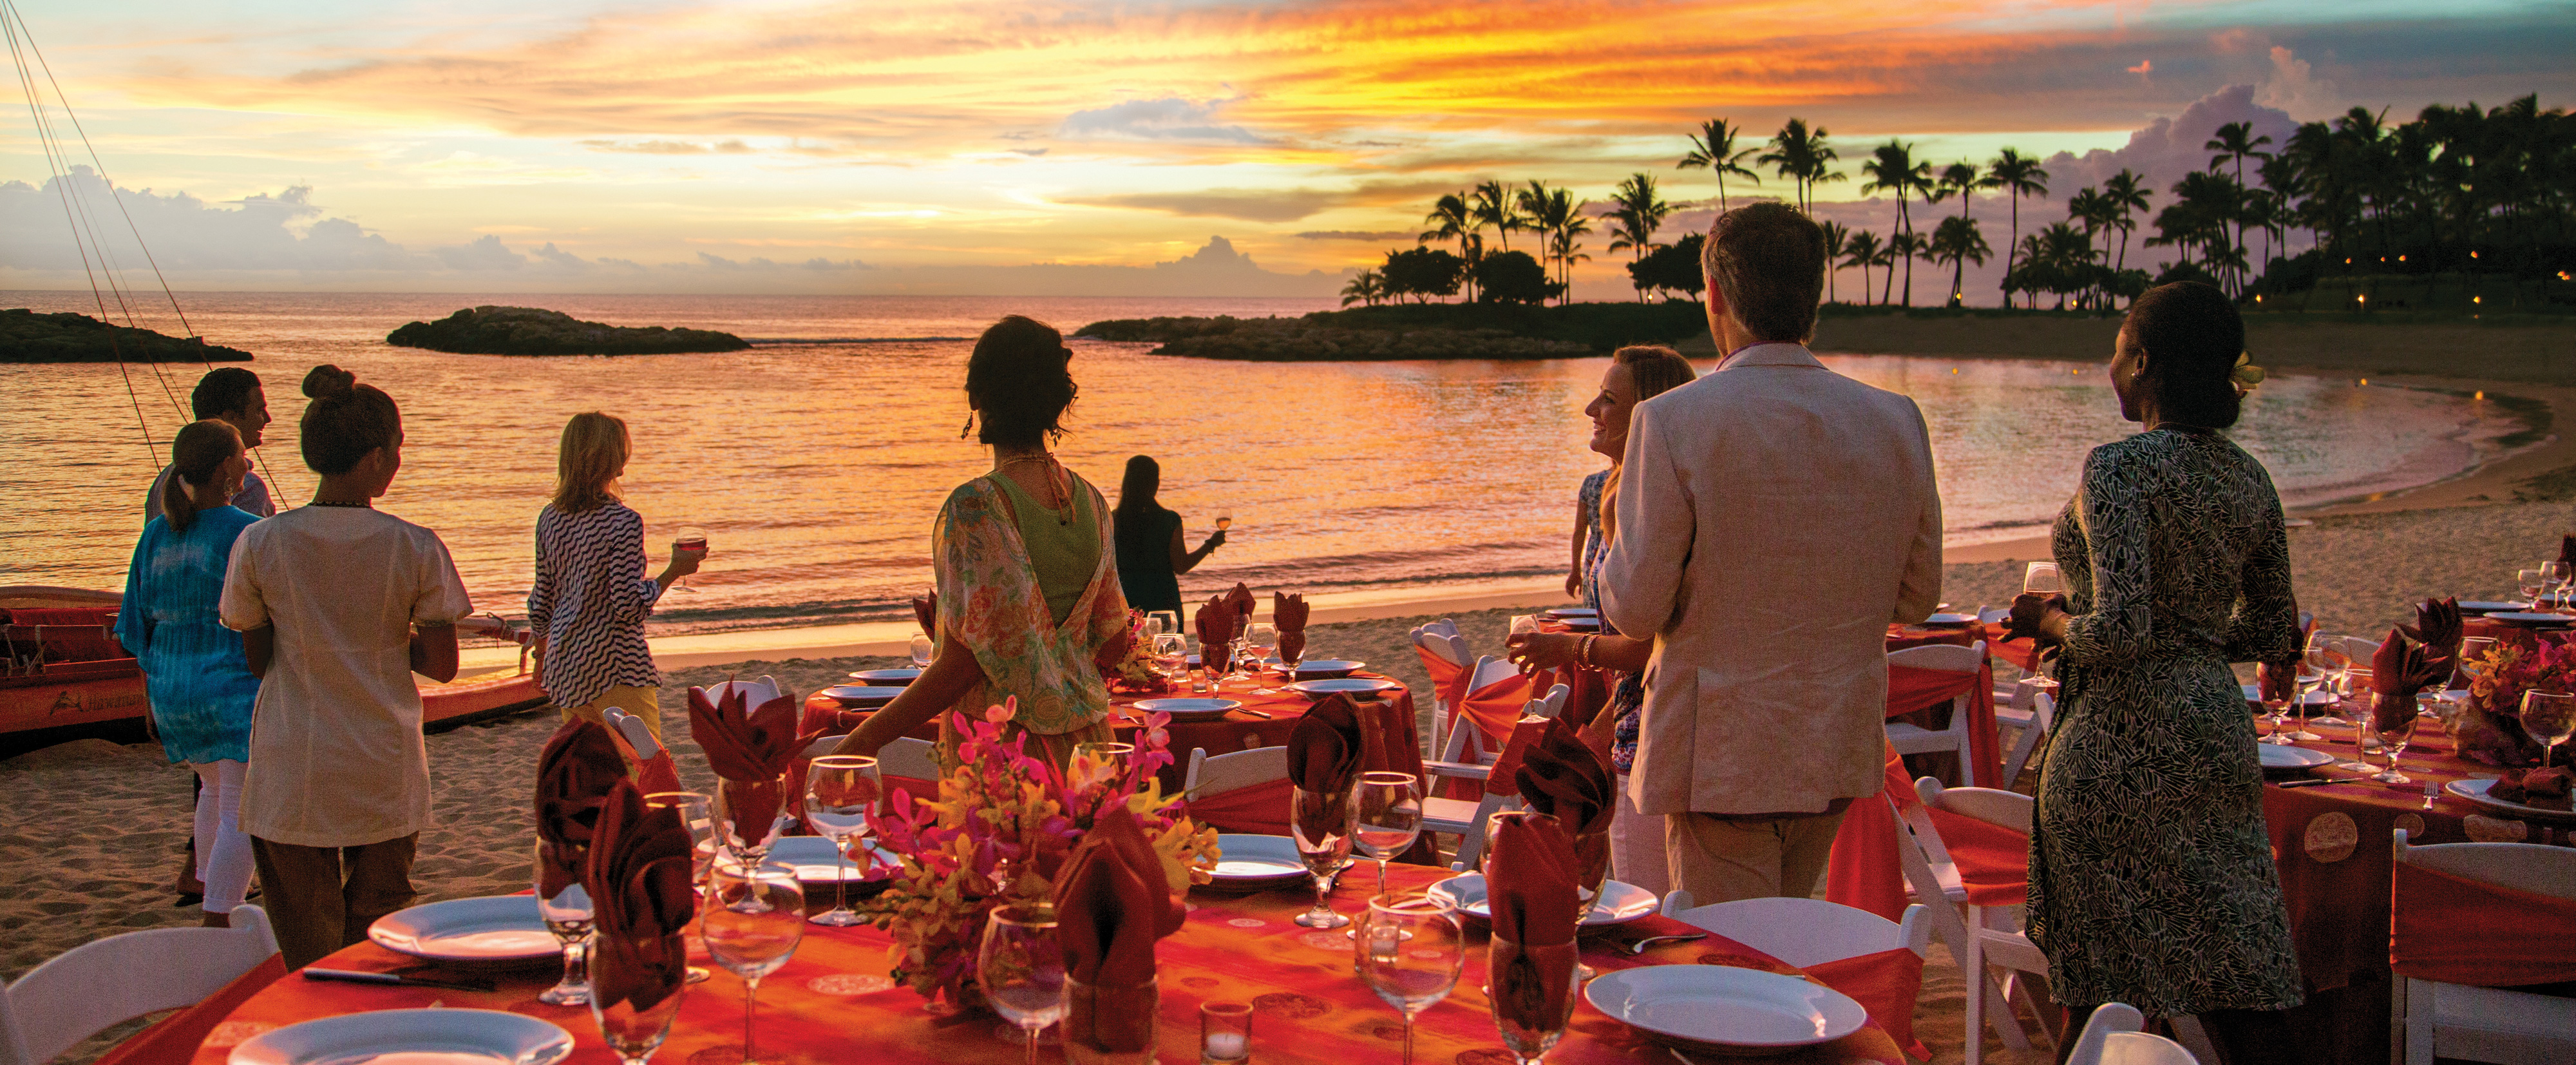 Party goers on the beach pause to admire a colorful sunset over the lagoon